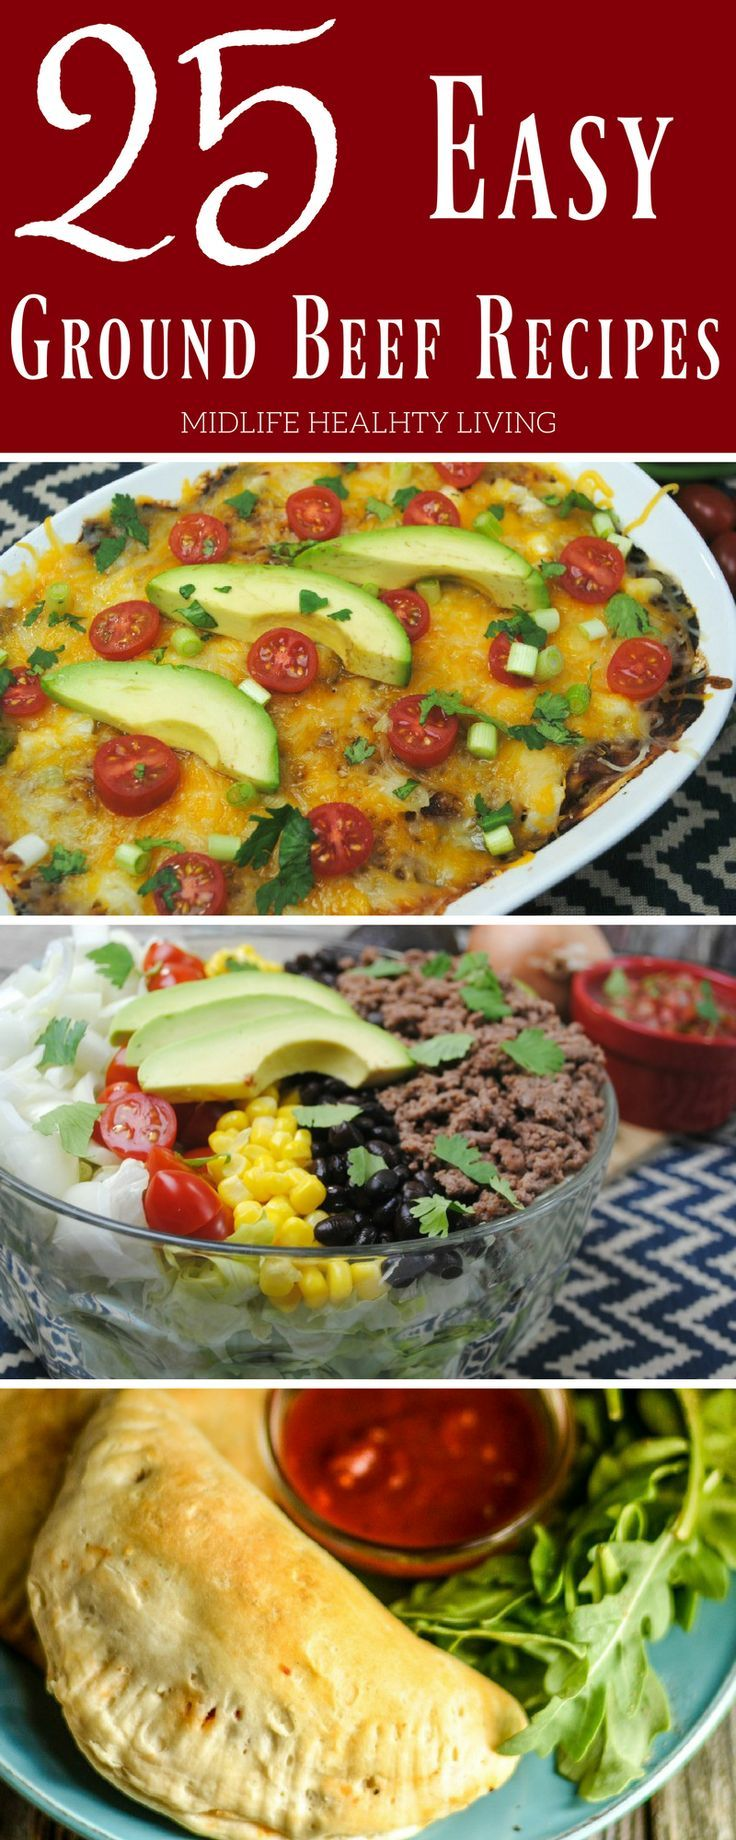 Beef Recipes to Add to Your Healthy Dinner Routine